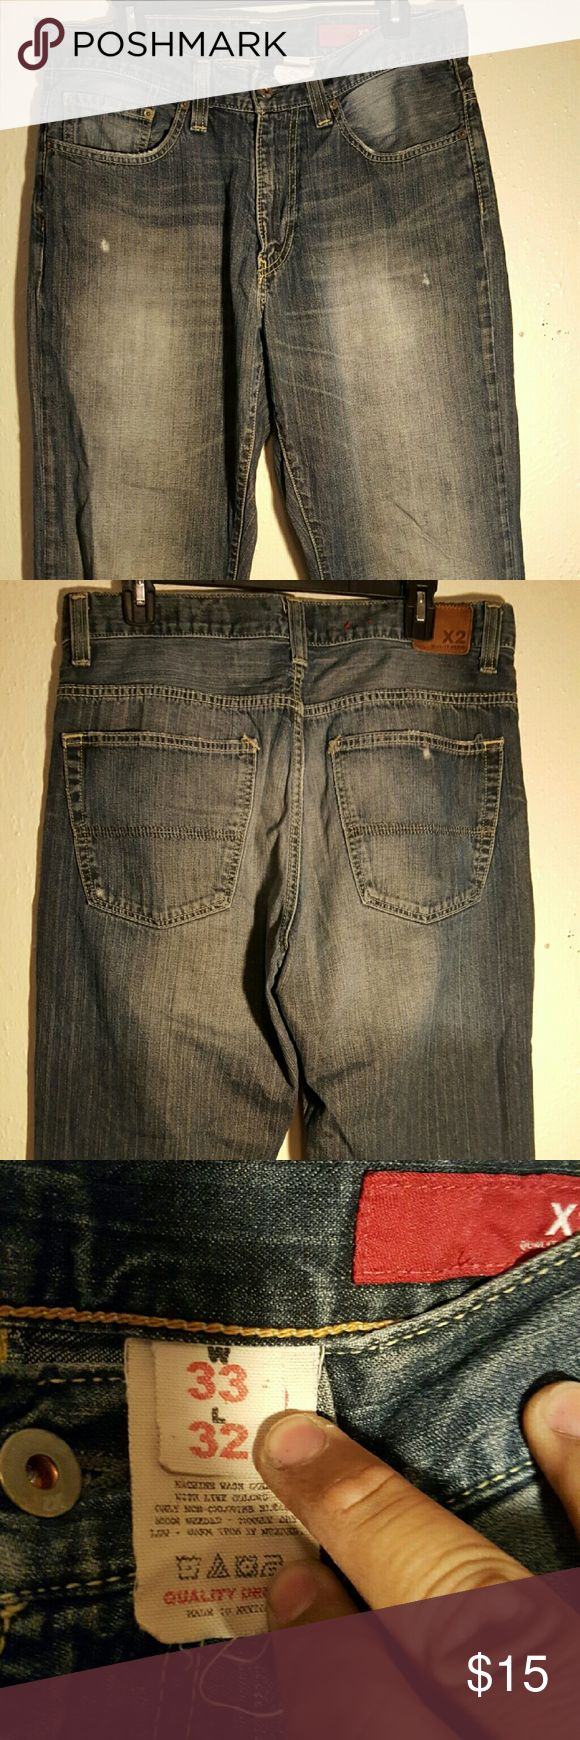 Express men's jeans Worn it once or twice Express Jeans